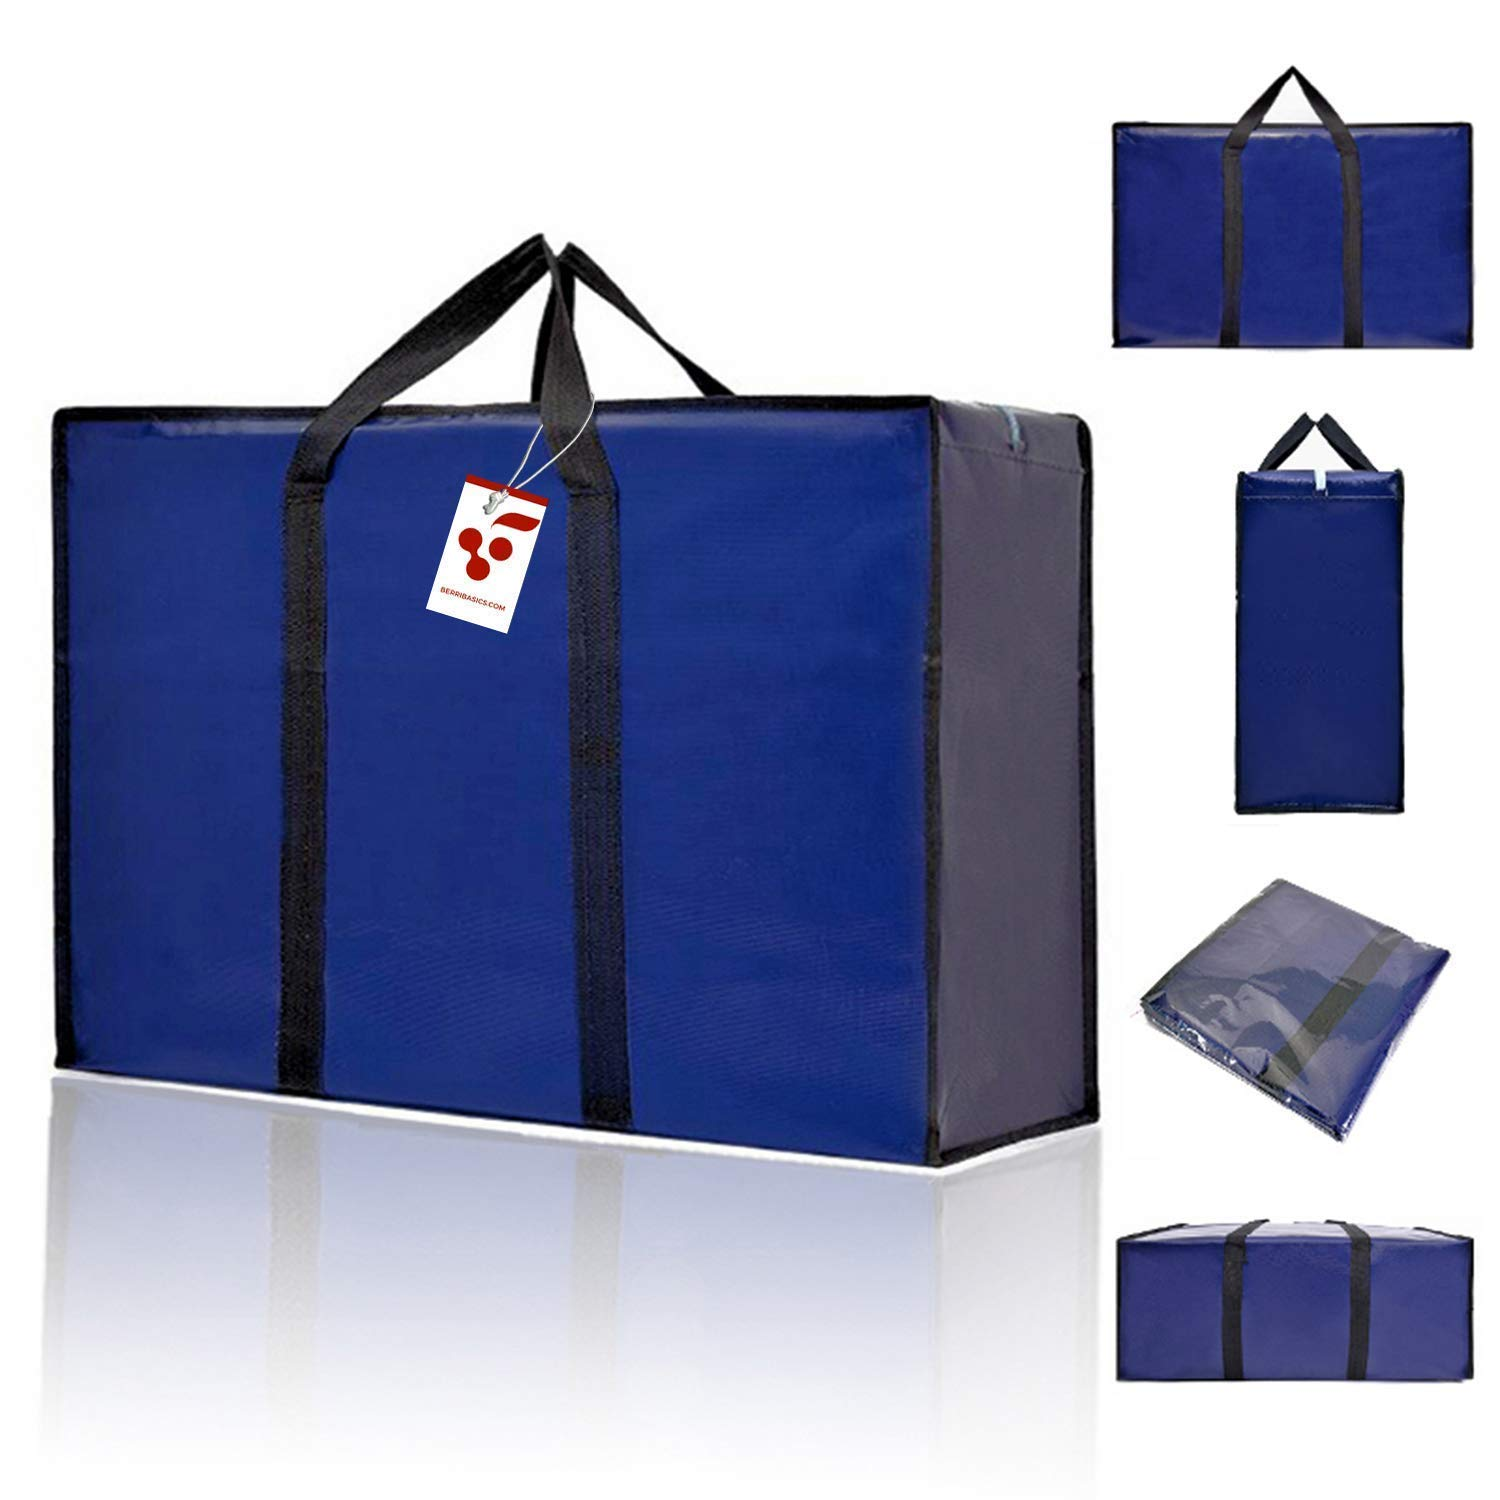 6197e4cfc93130 BERRI BASICS Large Oxford Moving bags,Laundry Storage, Shopping Bag with  Double Zipper REUSABLE: Amazon.co.uk: Kitchen & Home